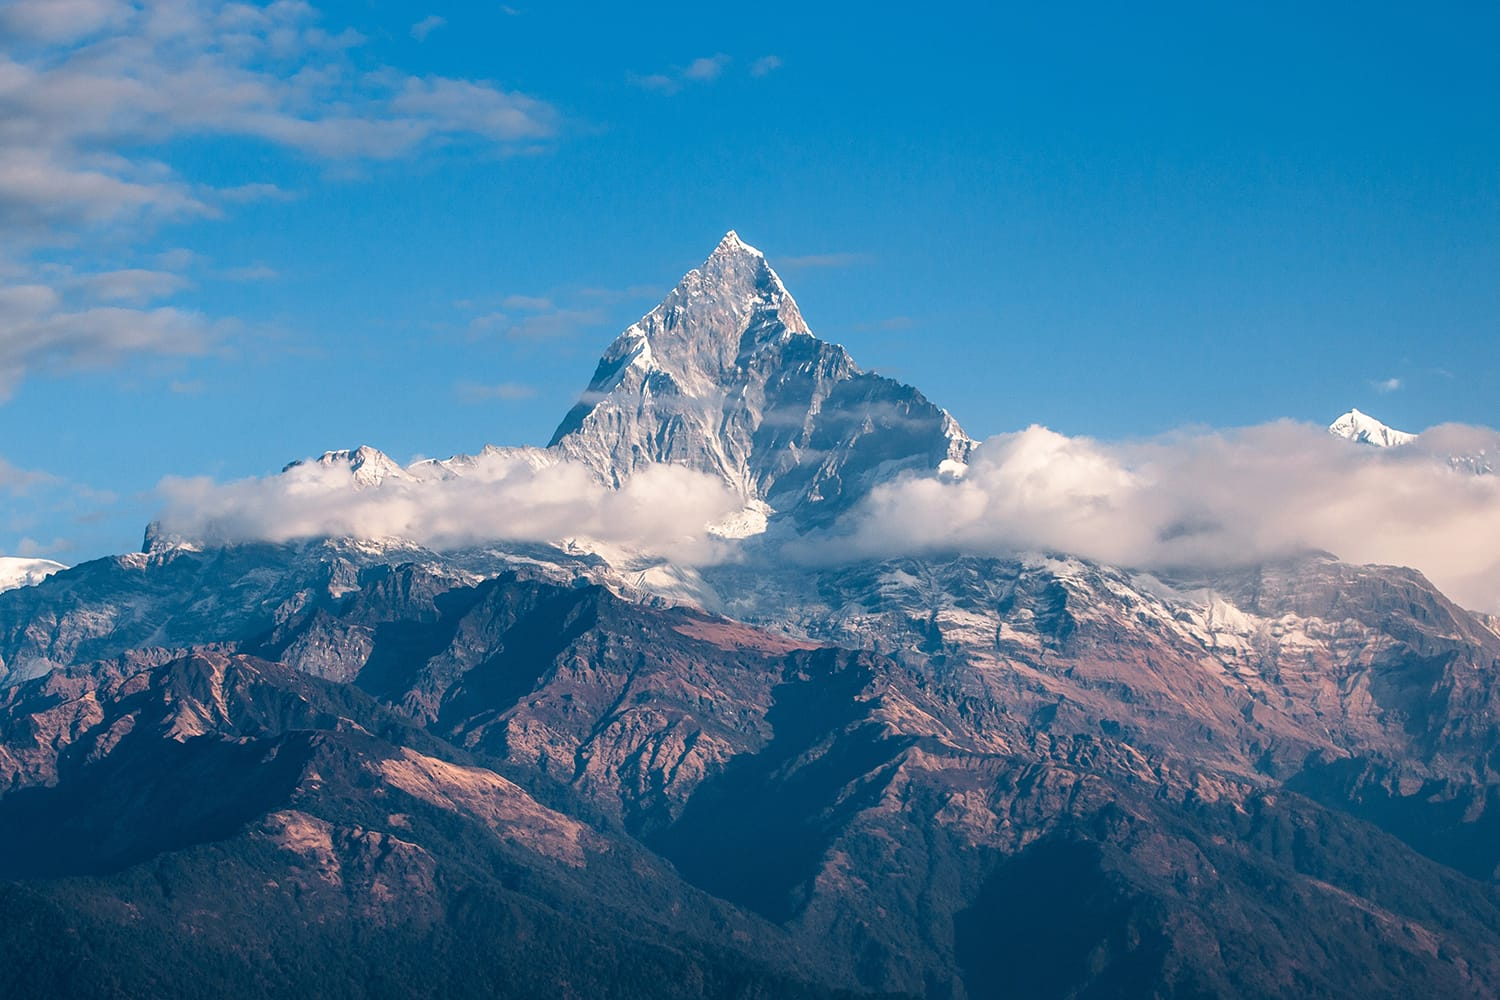 Tips and Tricks for Composing Mountain Landscape Photos